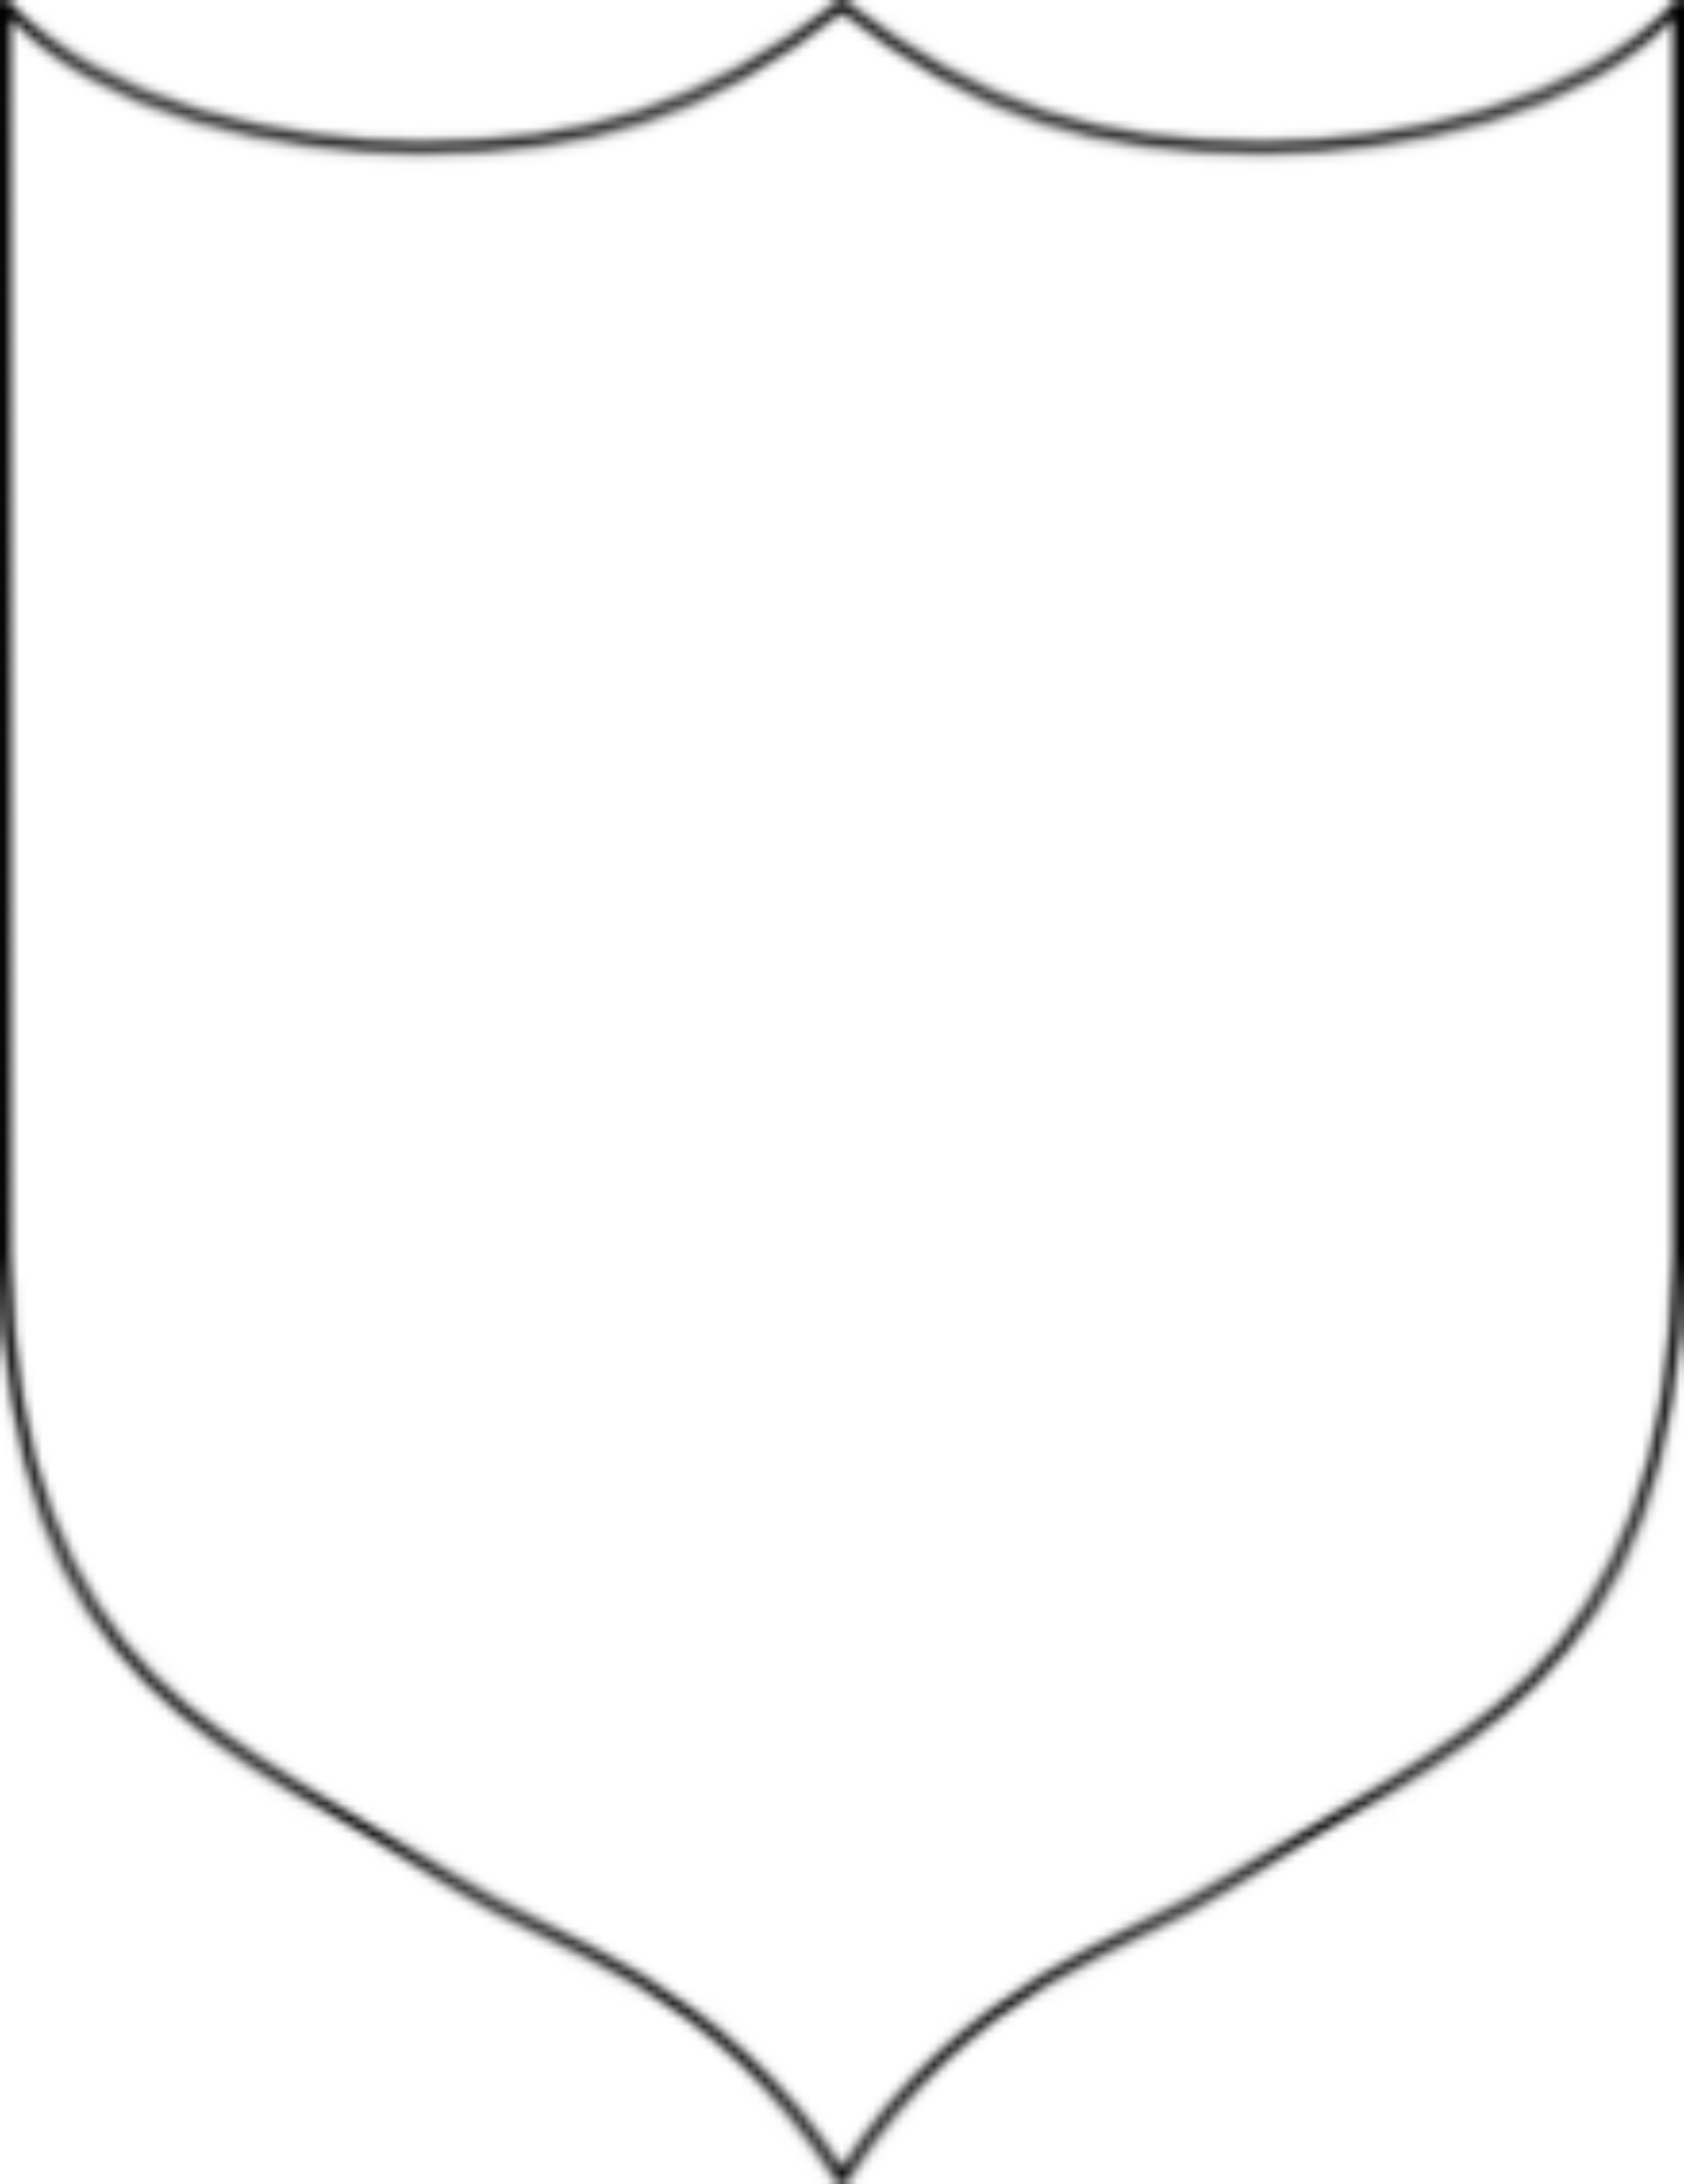 Coat of arms template cyberuse for Blank shield template printable